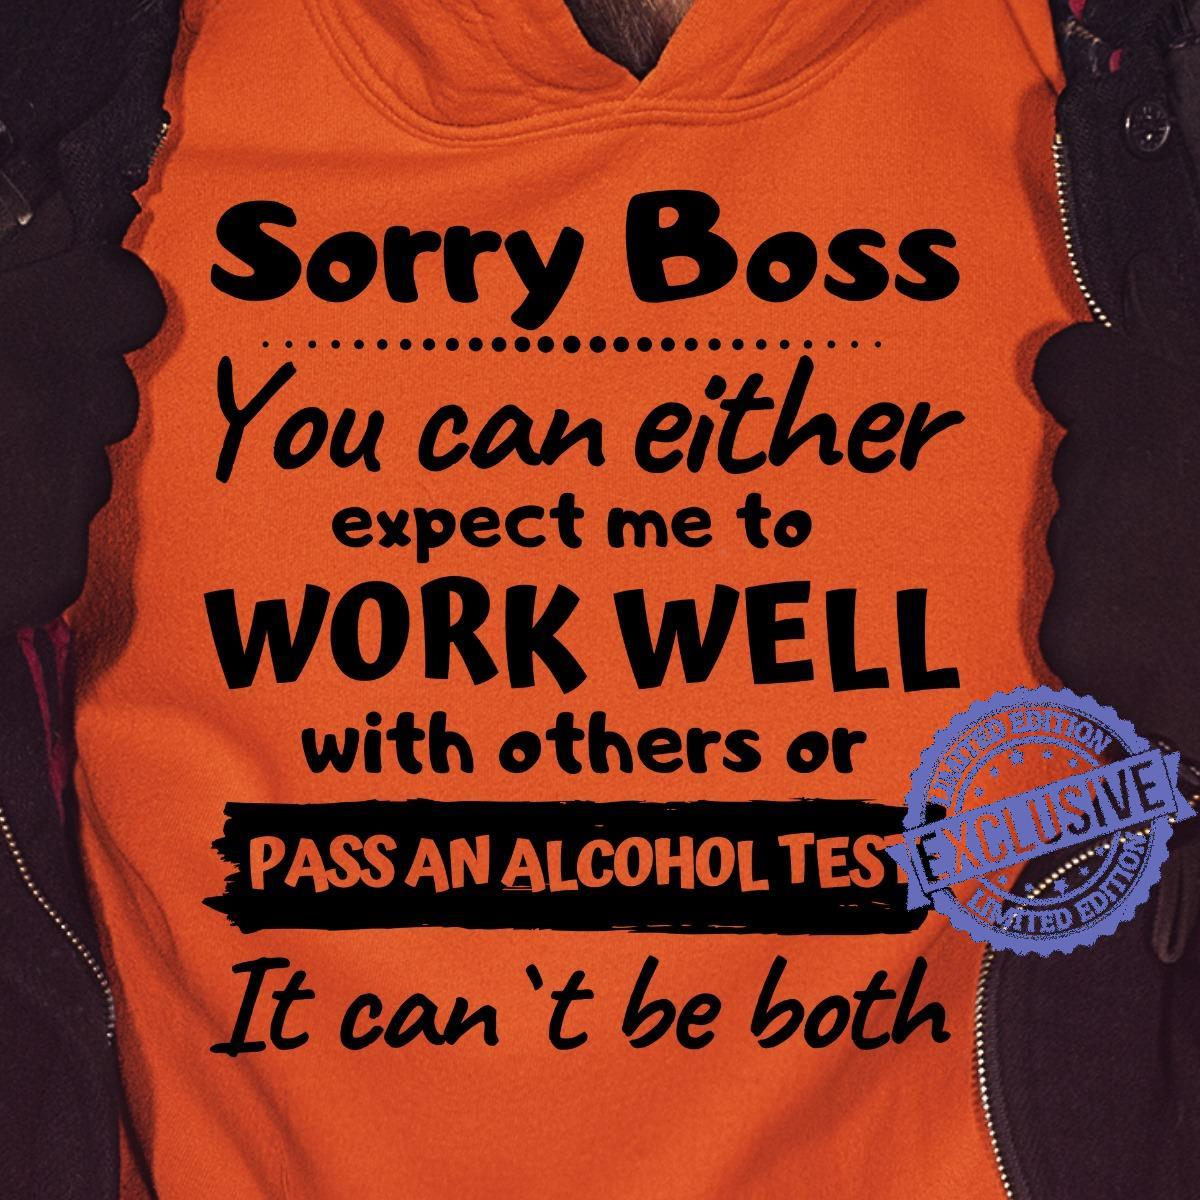 Sorry boss you can either expect me to work well with others or pass an alcohol test it can't be both shirt